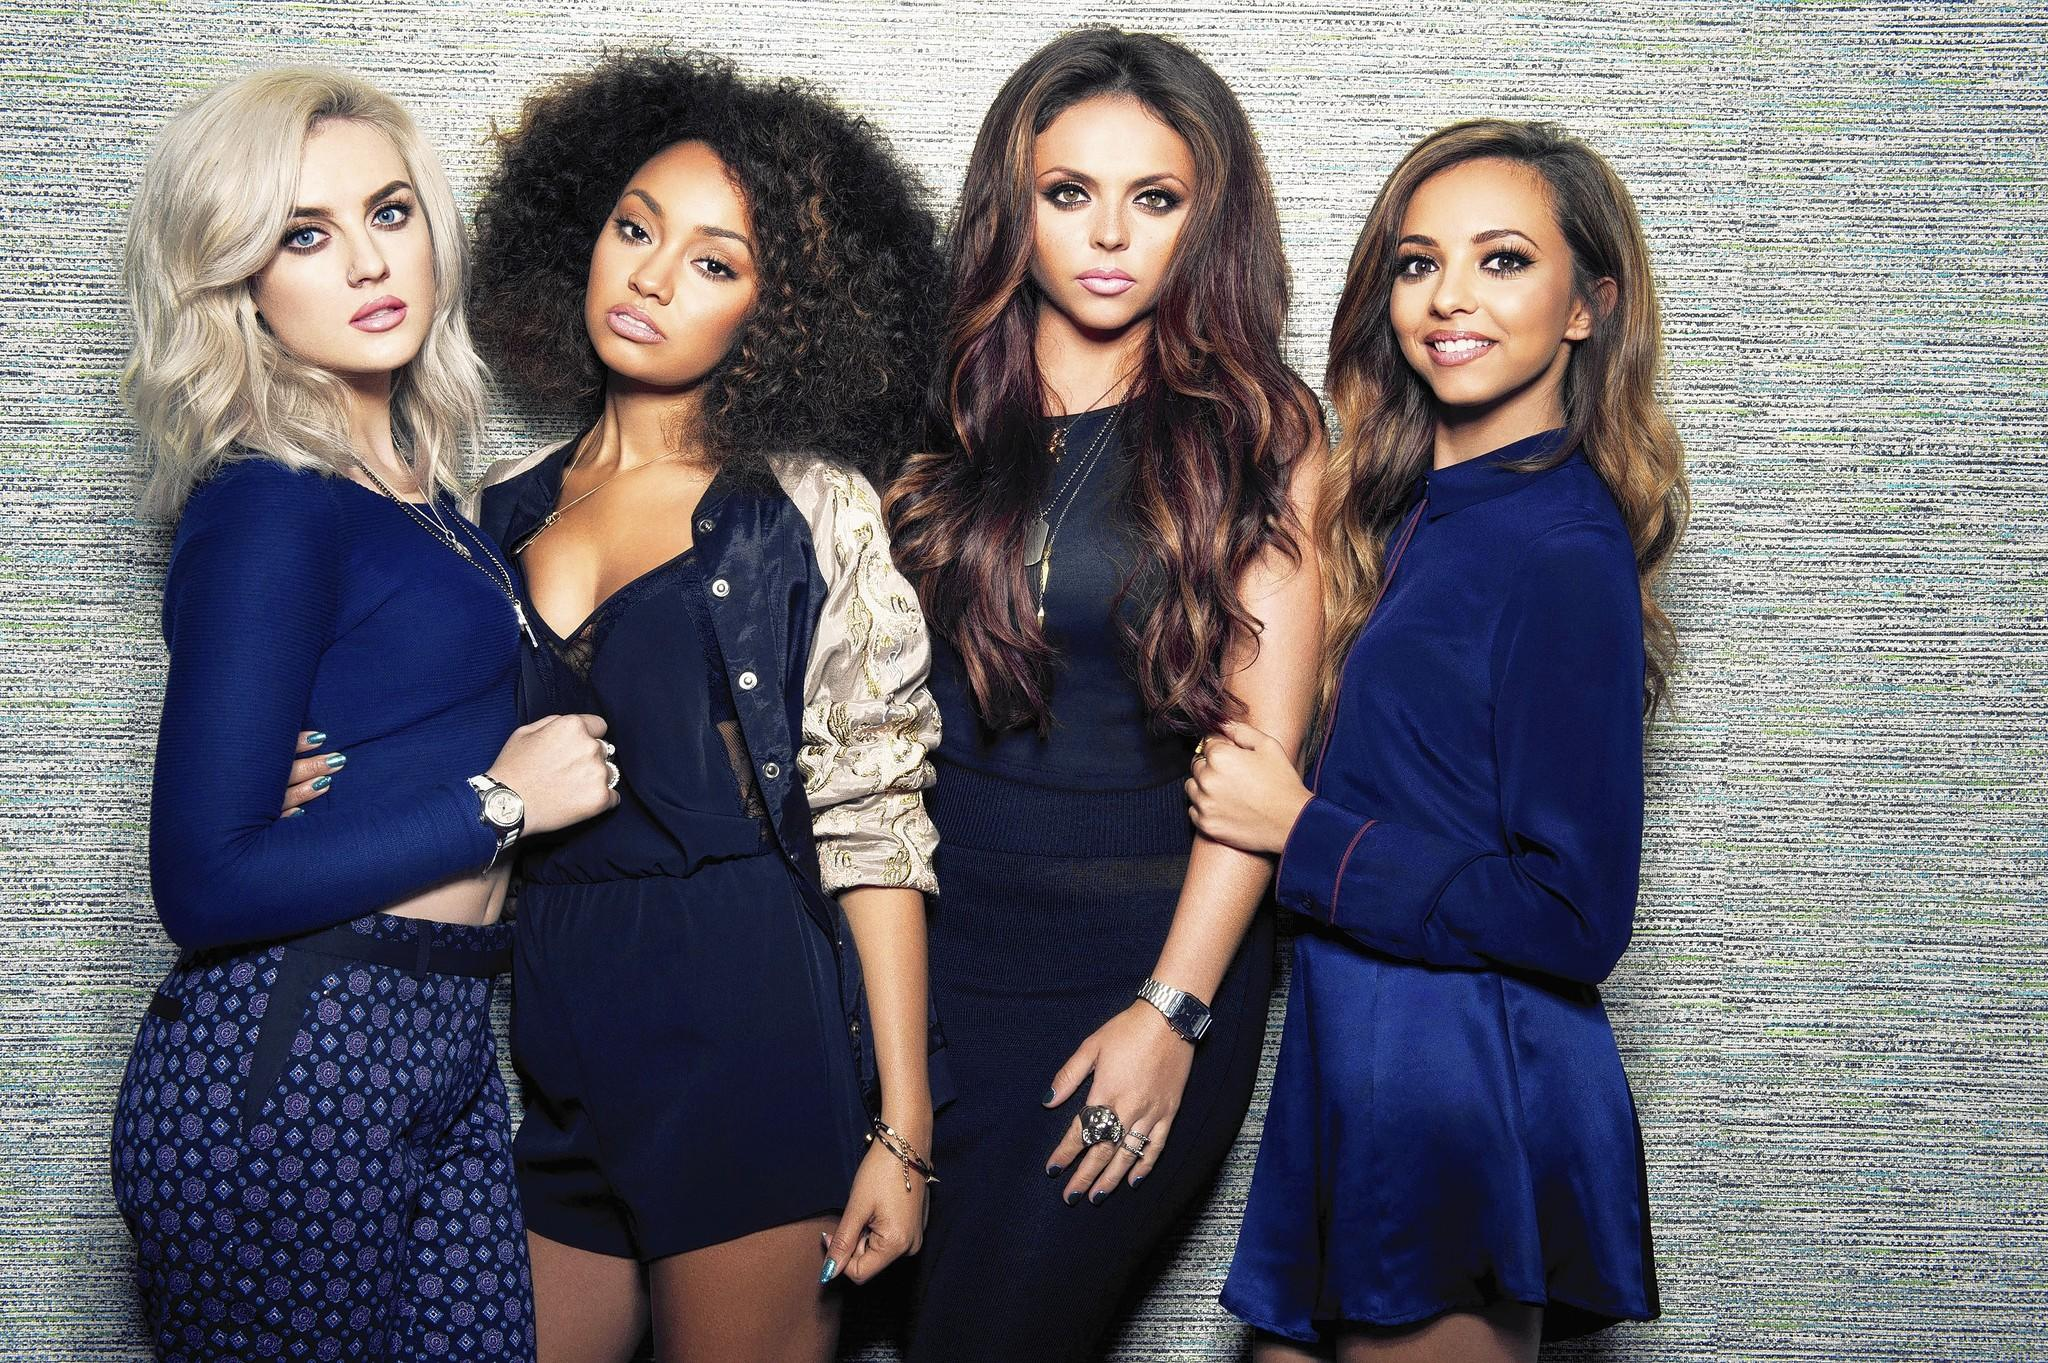 Pop group Little Mix featuring (left to right): Perrie Edwards, Leigh-Anne Pinnock, Jesy Nelson and Jade Thirlwall.